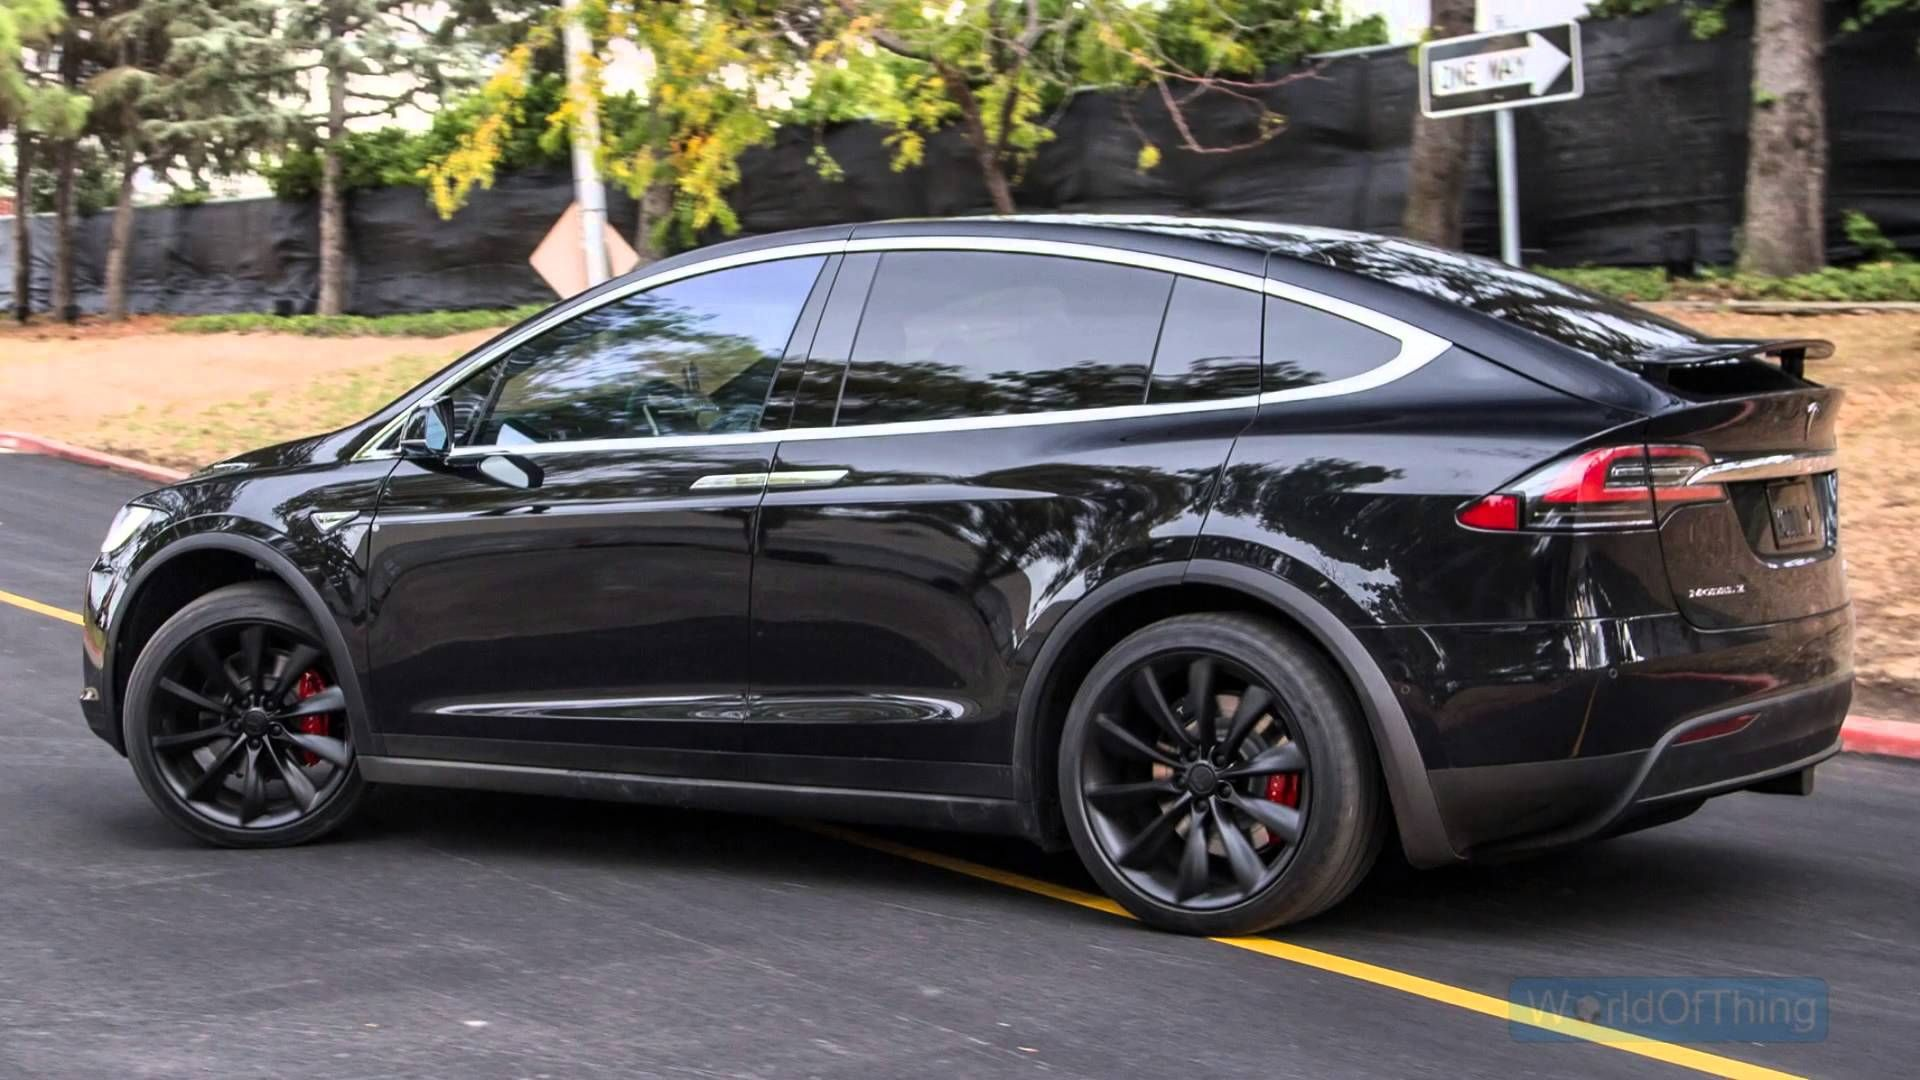 Tesla model x exterior tesla model x pinterest cars electric vehicle and dream cars